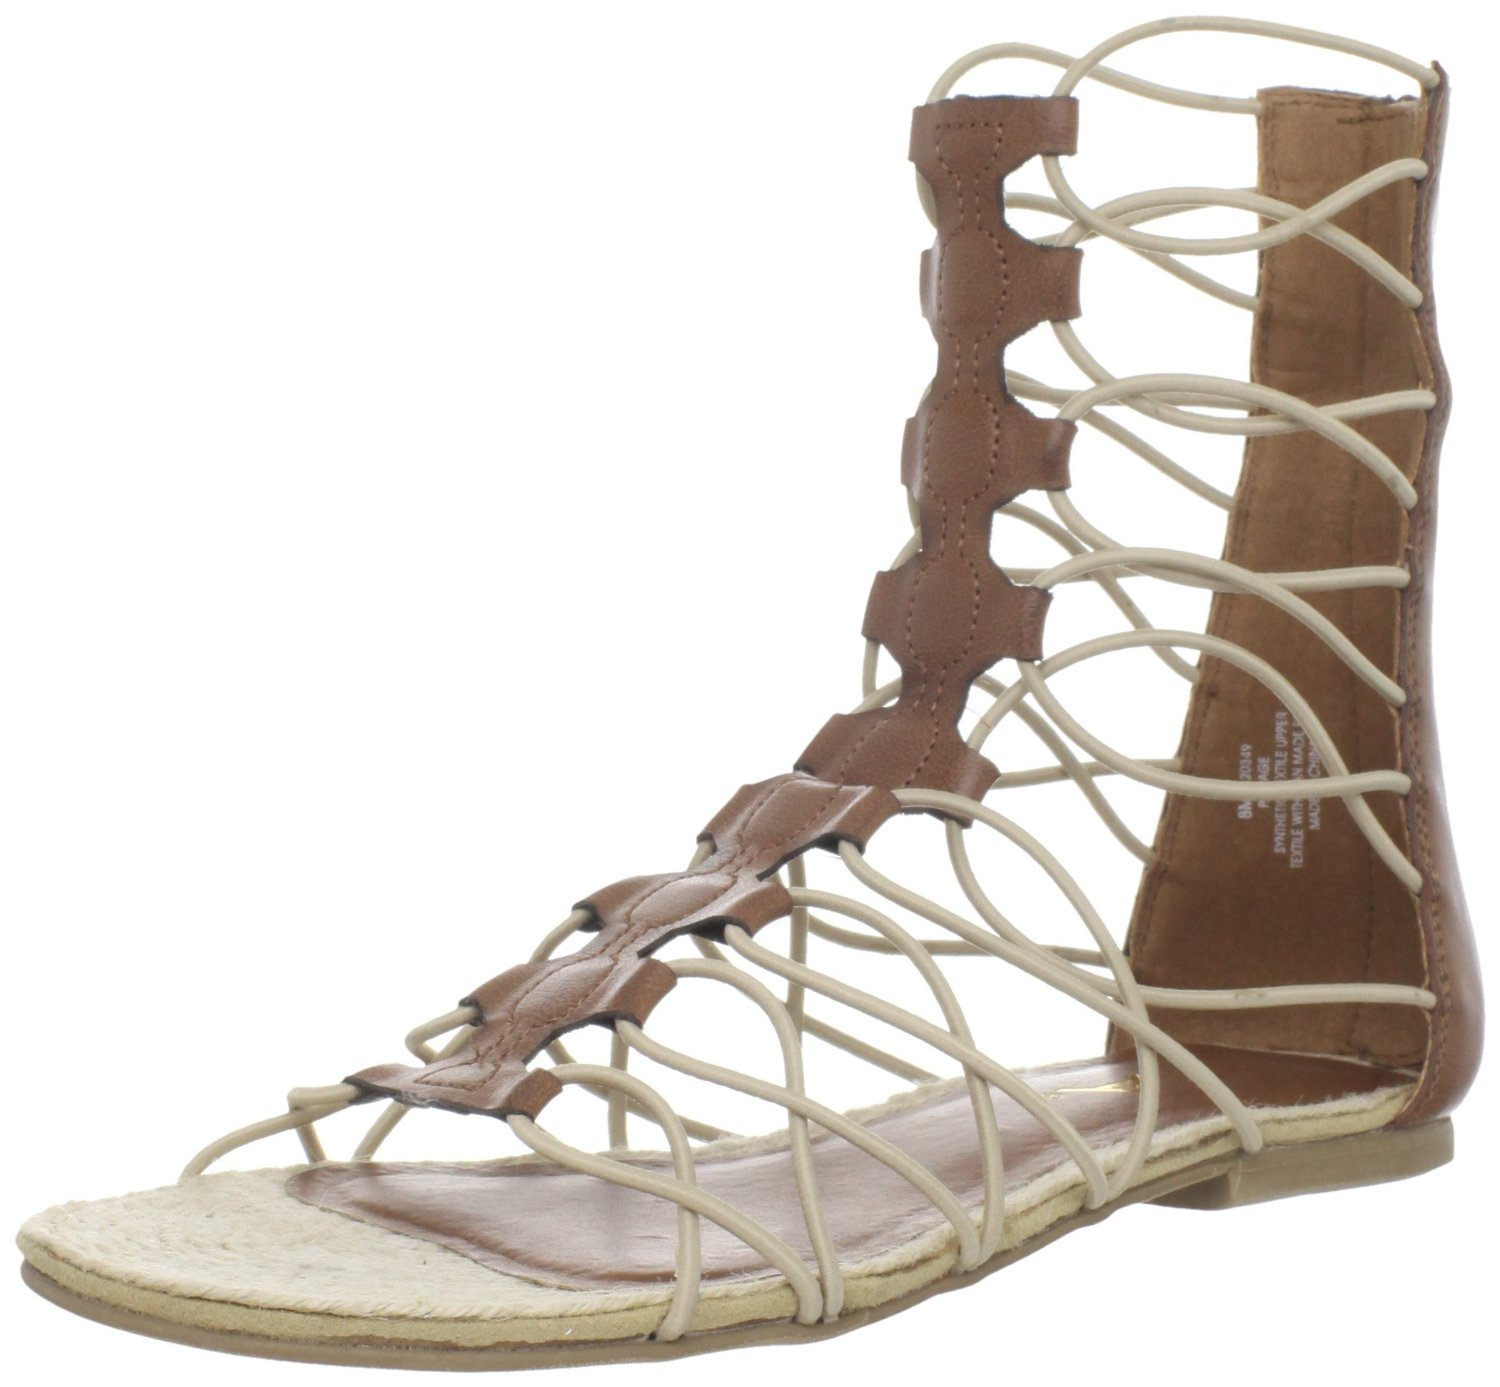 Unique  Gladiator Sandals Emozioni Axwell Women Leather Gold Gladiator Sandal